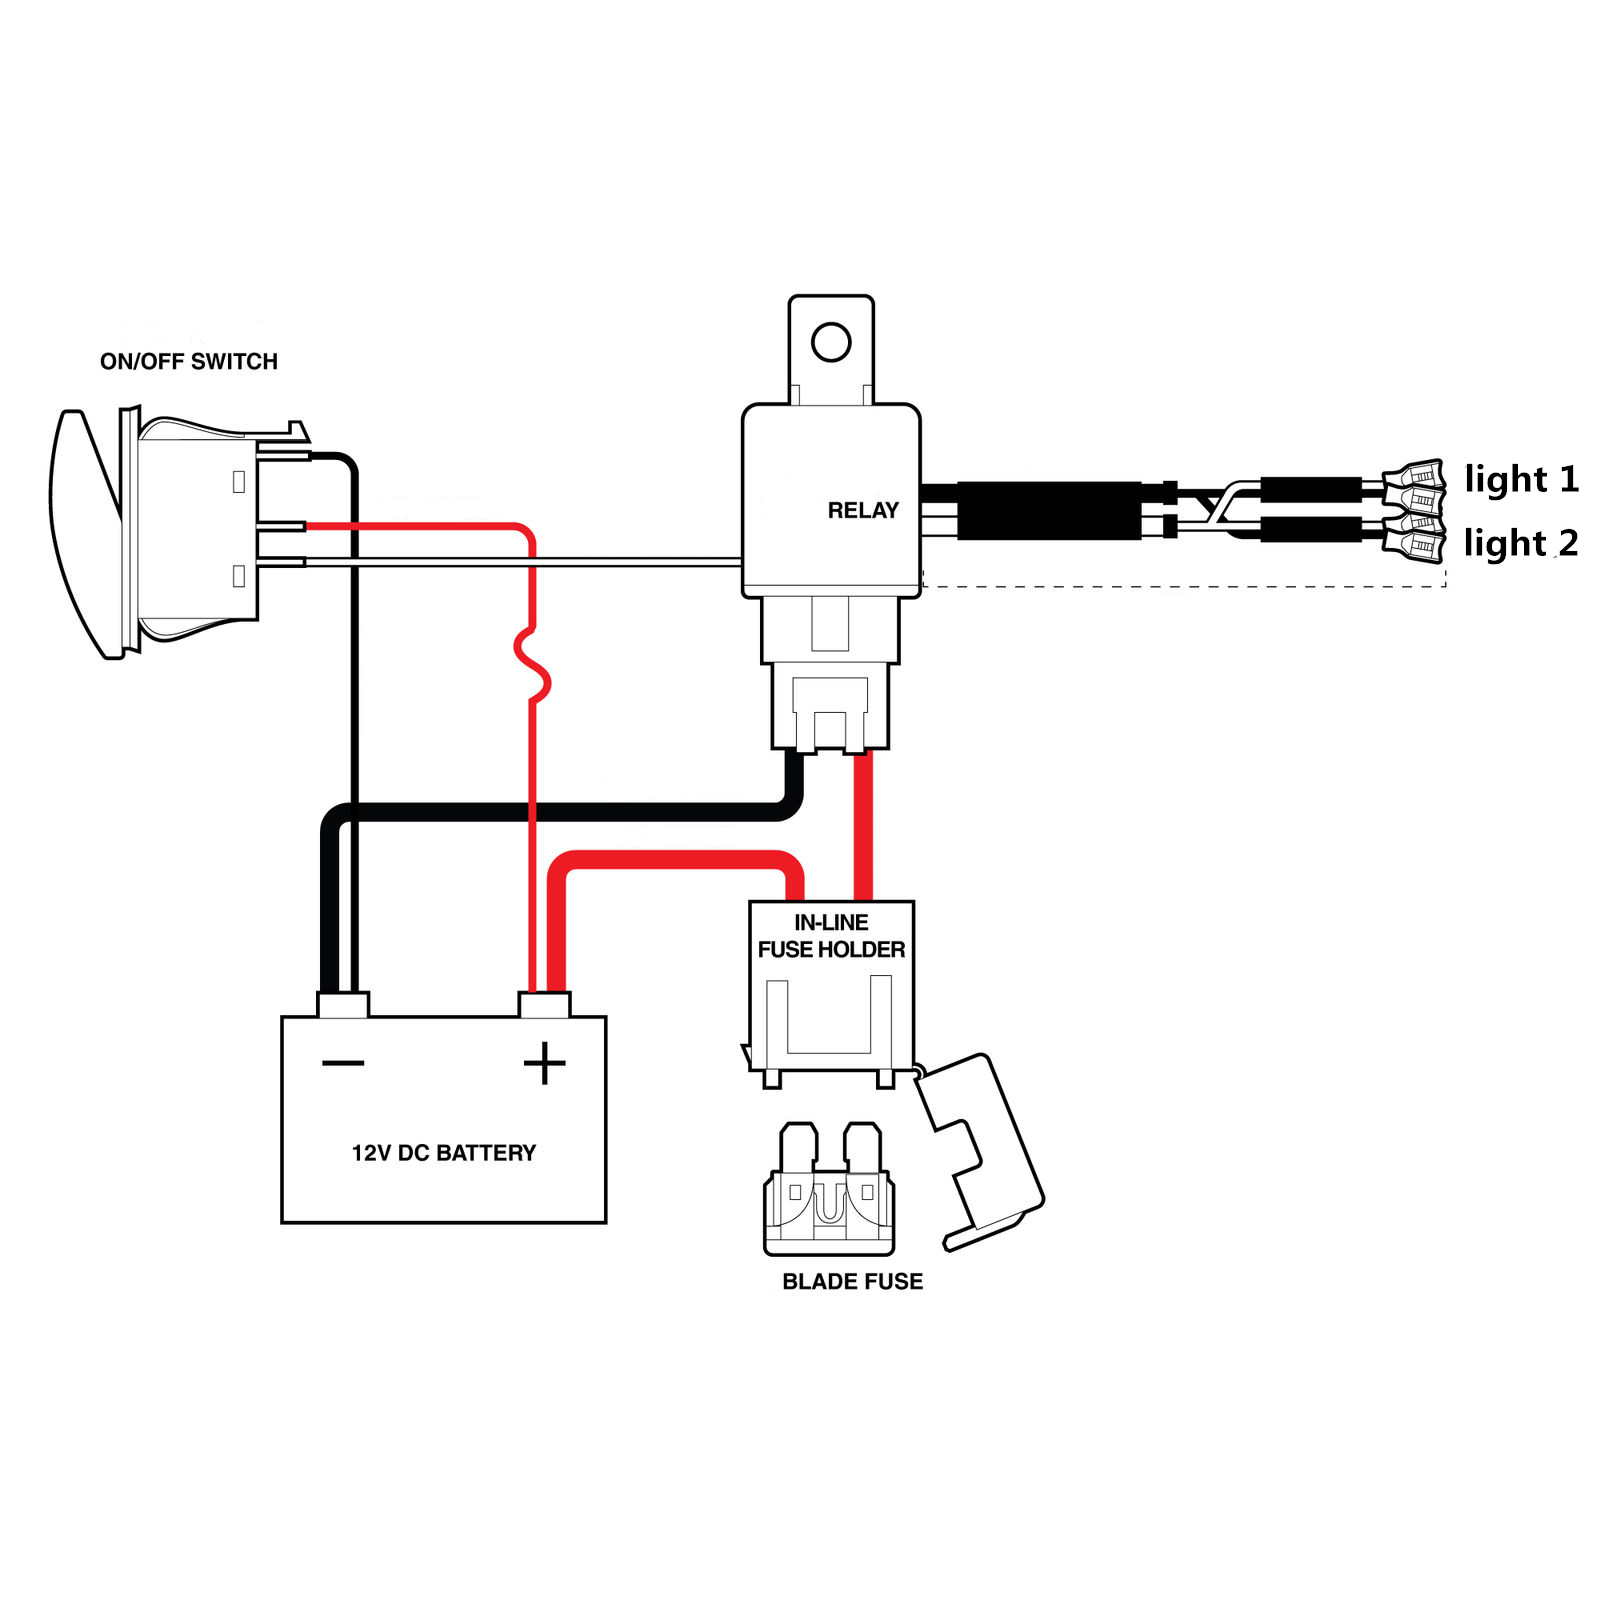 hight resolution of wiring harness 100 brand new wattage max 300w colour black relay 12v 40a fuse 30a